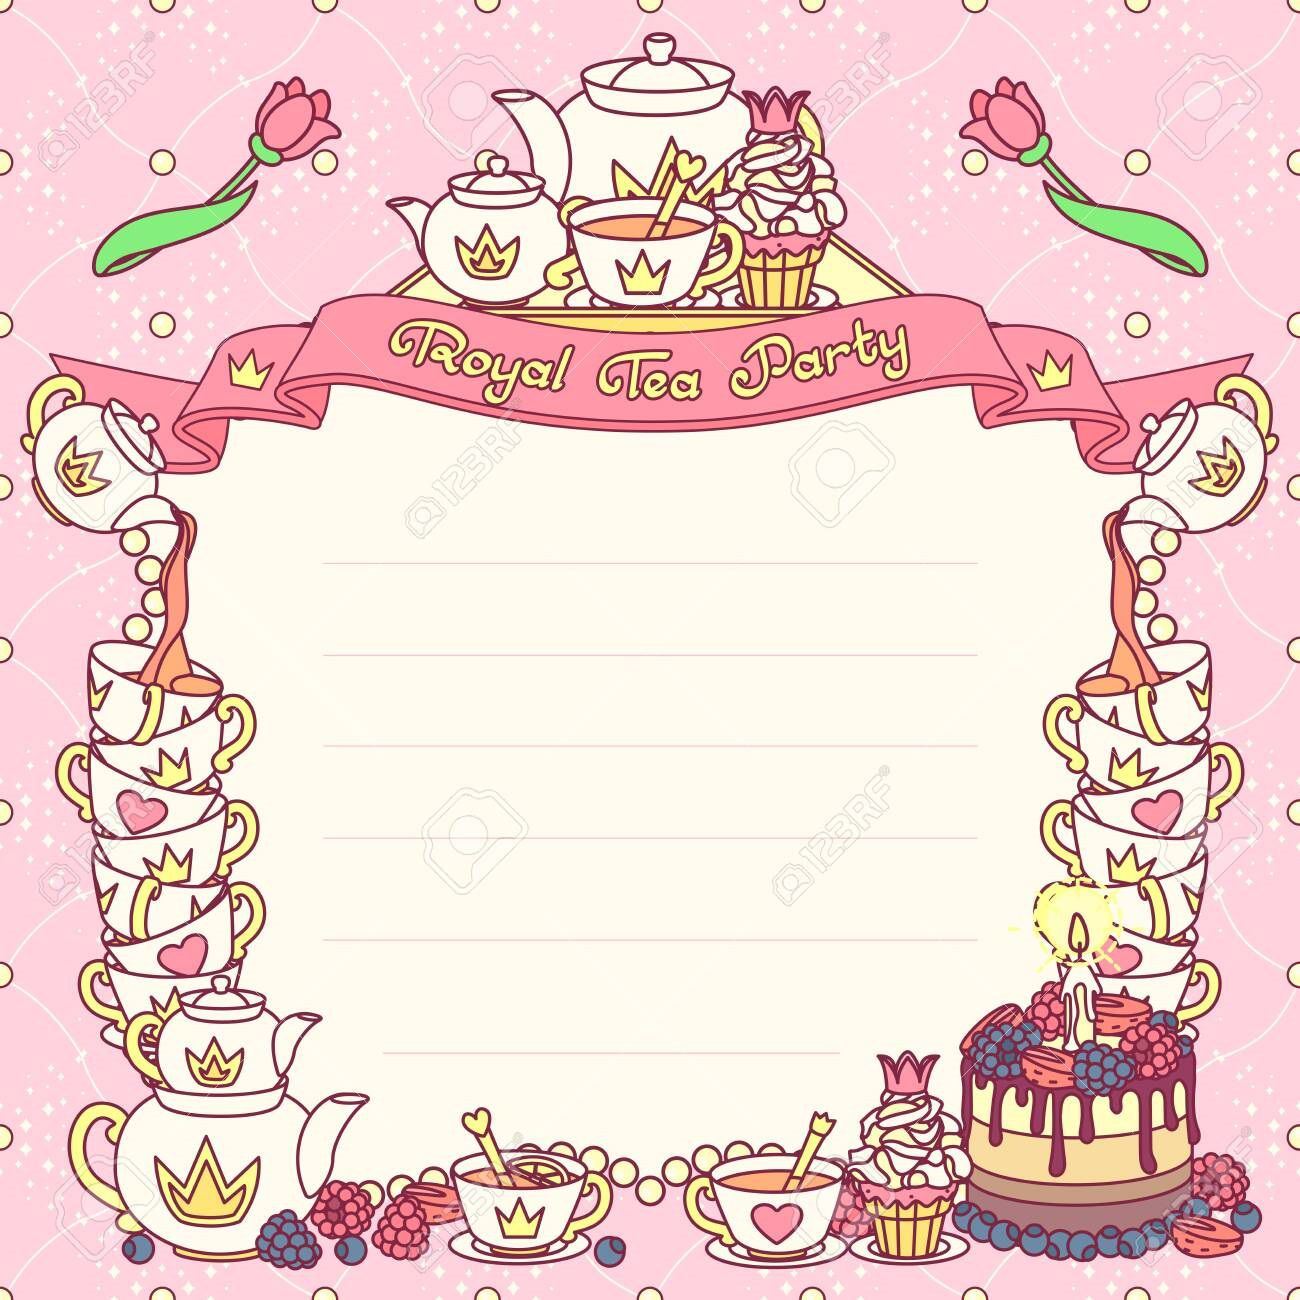 006 Sensational Tea Party Invitation Template Picture  Card Victorian Wording For Bridal ShowerFull